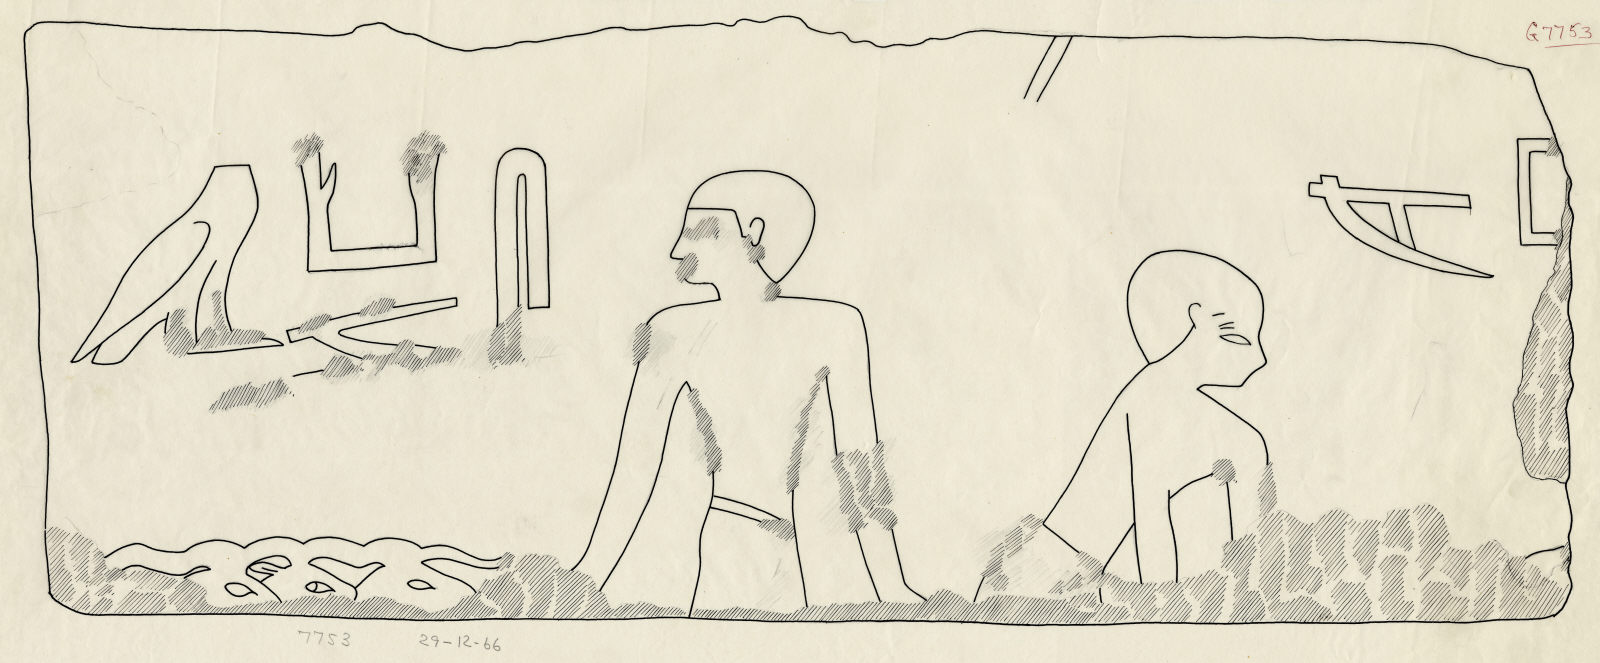 Drawings: G 7753: fragment of relief